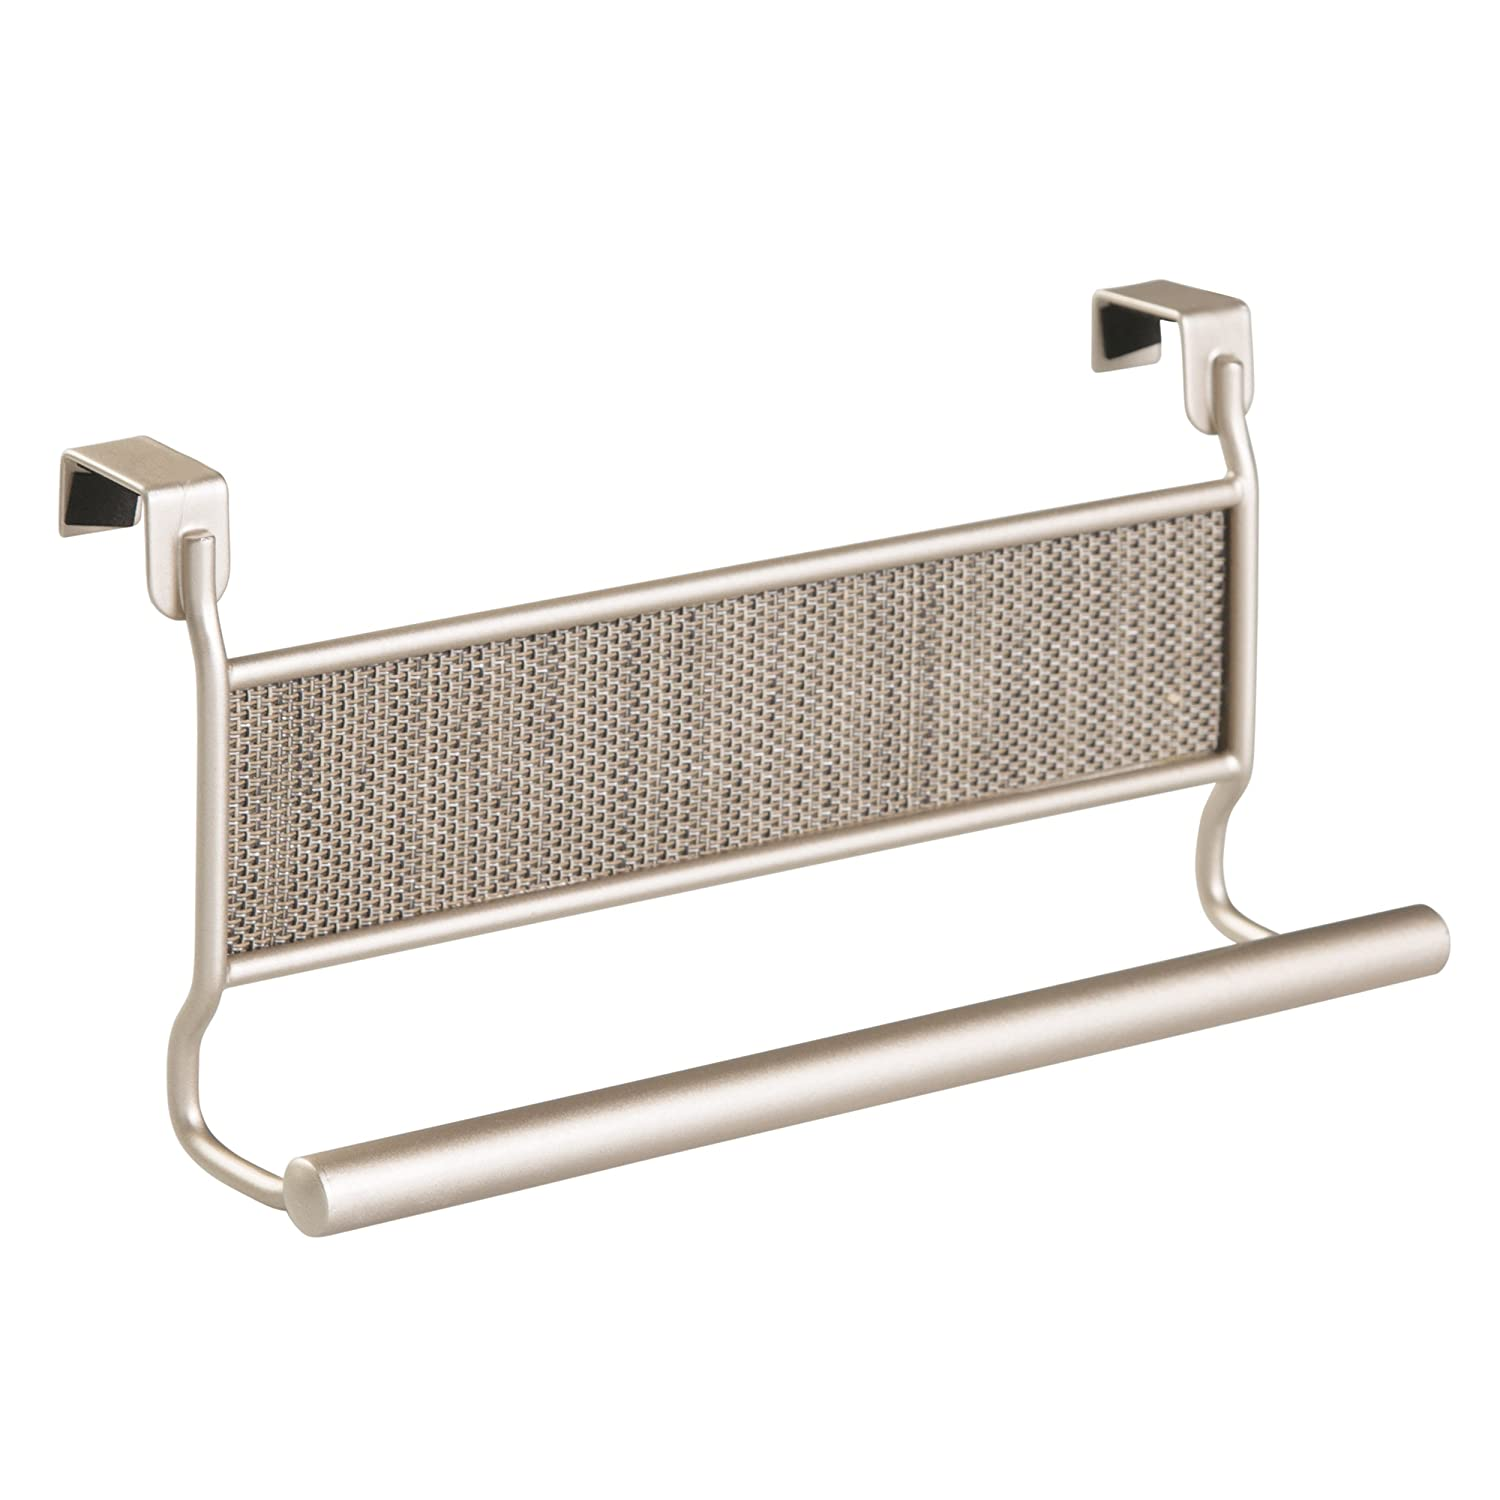 InterDesign Twillo Towel Rail, Over the Cabinet Tea Towel Holder, Ideal for Kitchens and Bathrooms, Made of Durable Metal, Silver 71112